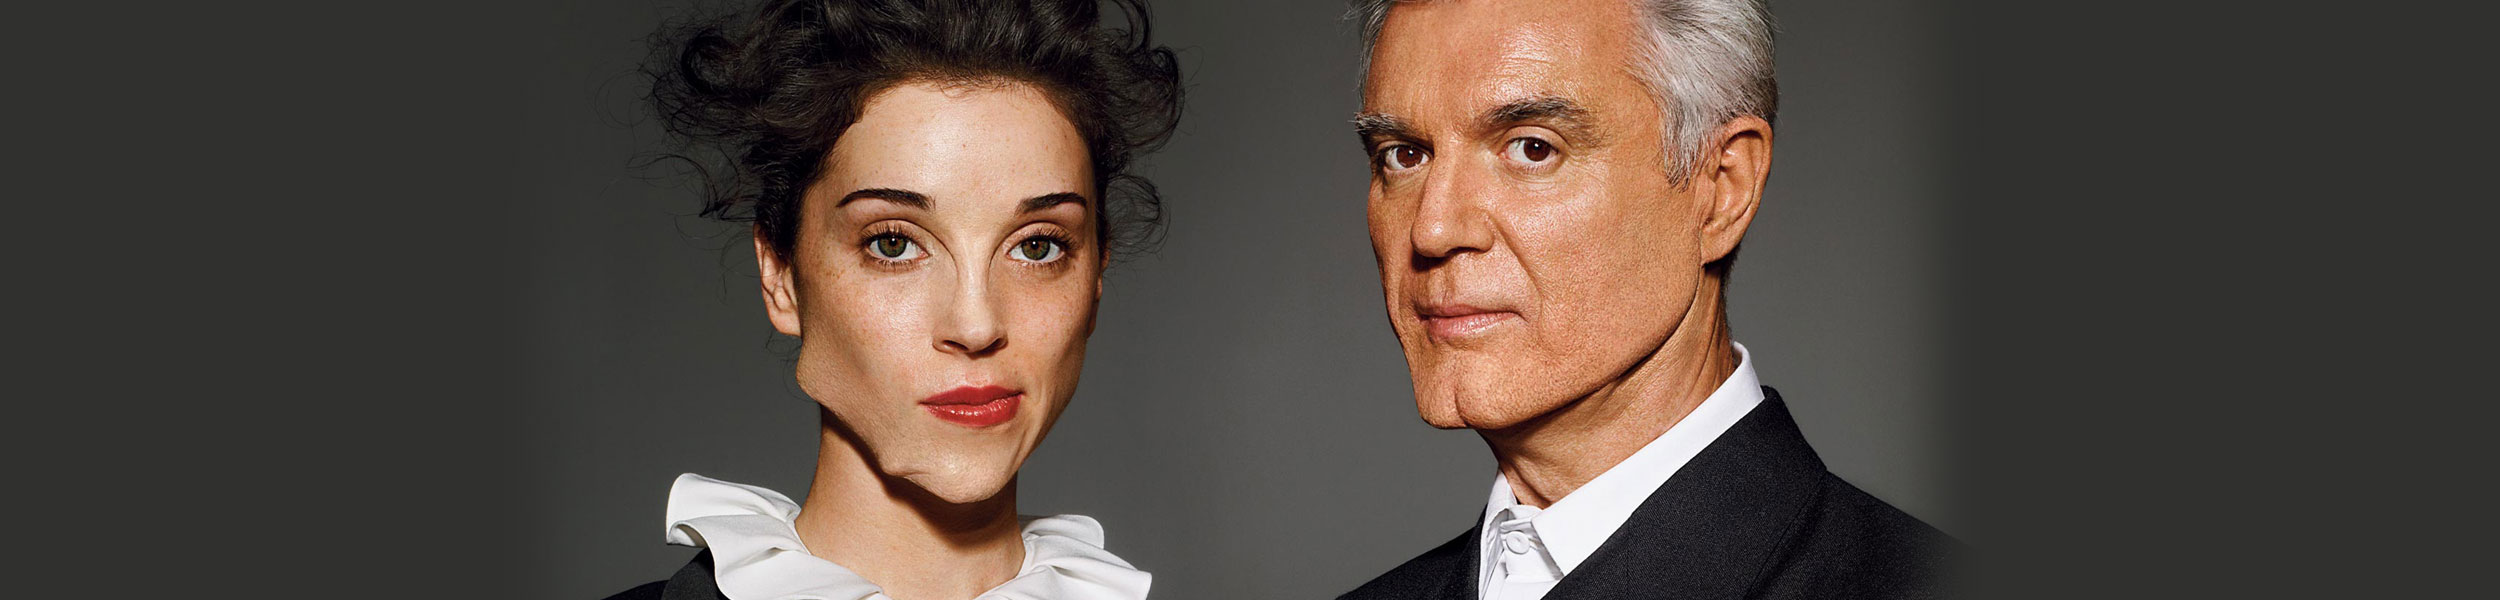 David Byrne & St. Vincent - David Byrne & St. Vincent Unveil New Track, 'Weekend In The Dust'